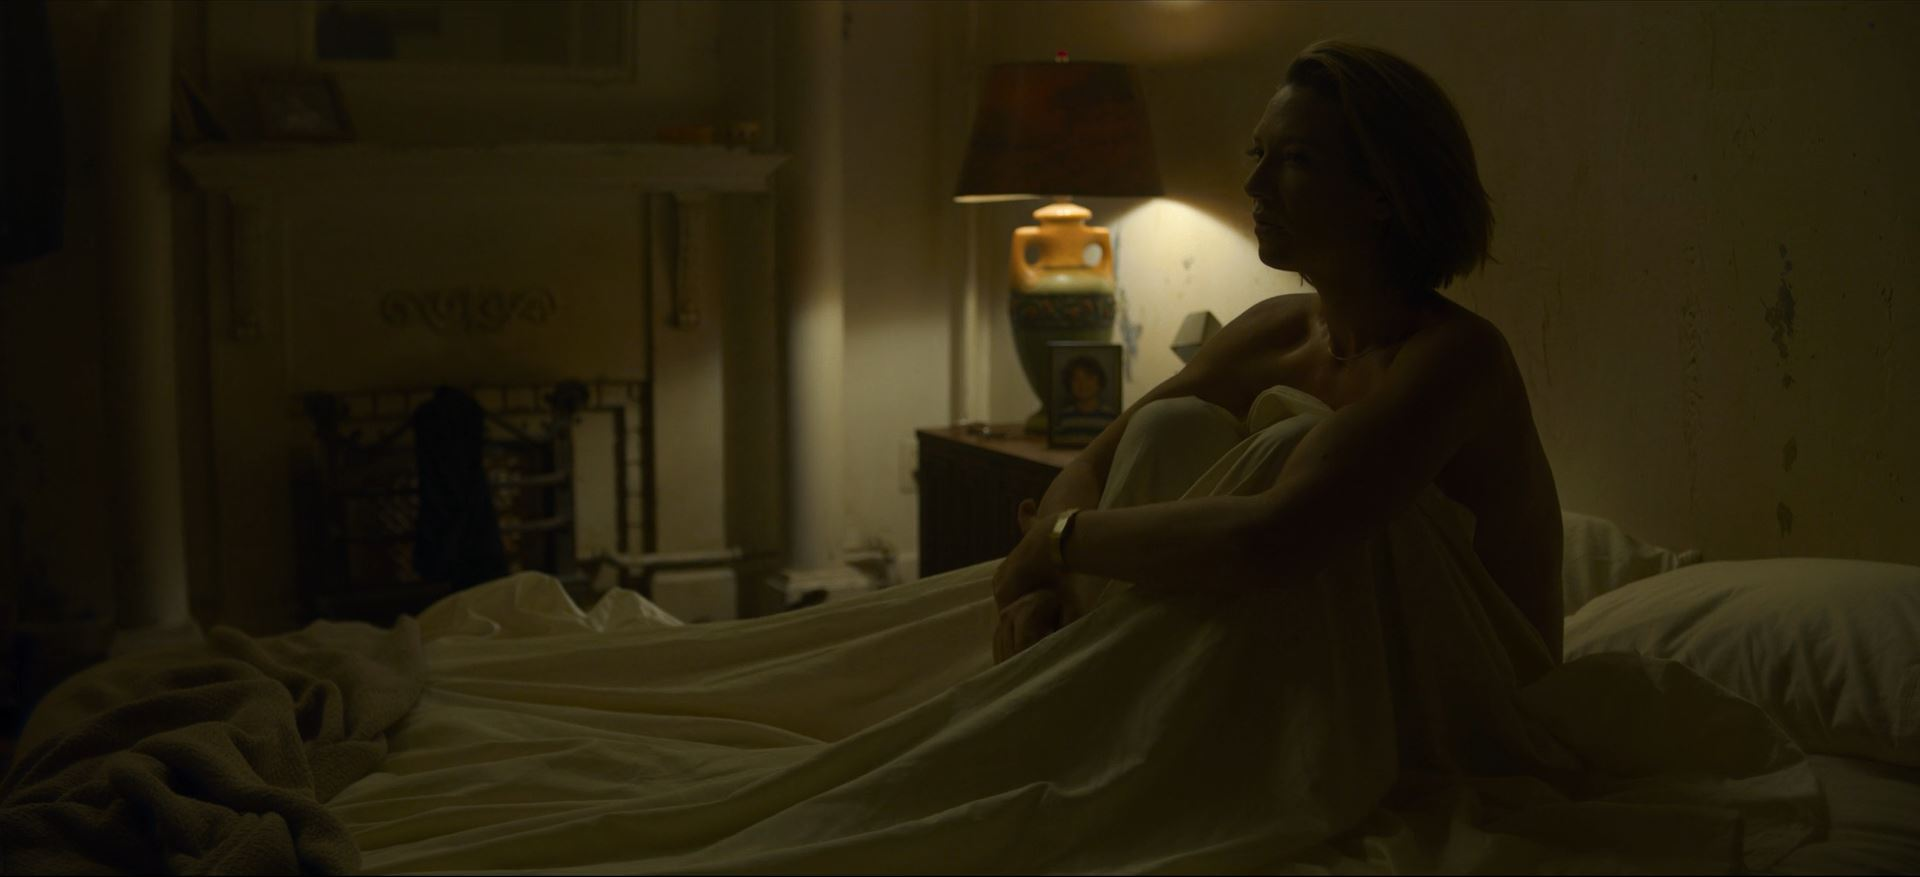 Mindhunter Season 2 Review - Wendy Carr nude played by Anna Torv